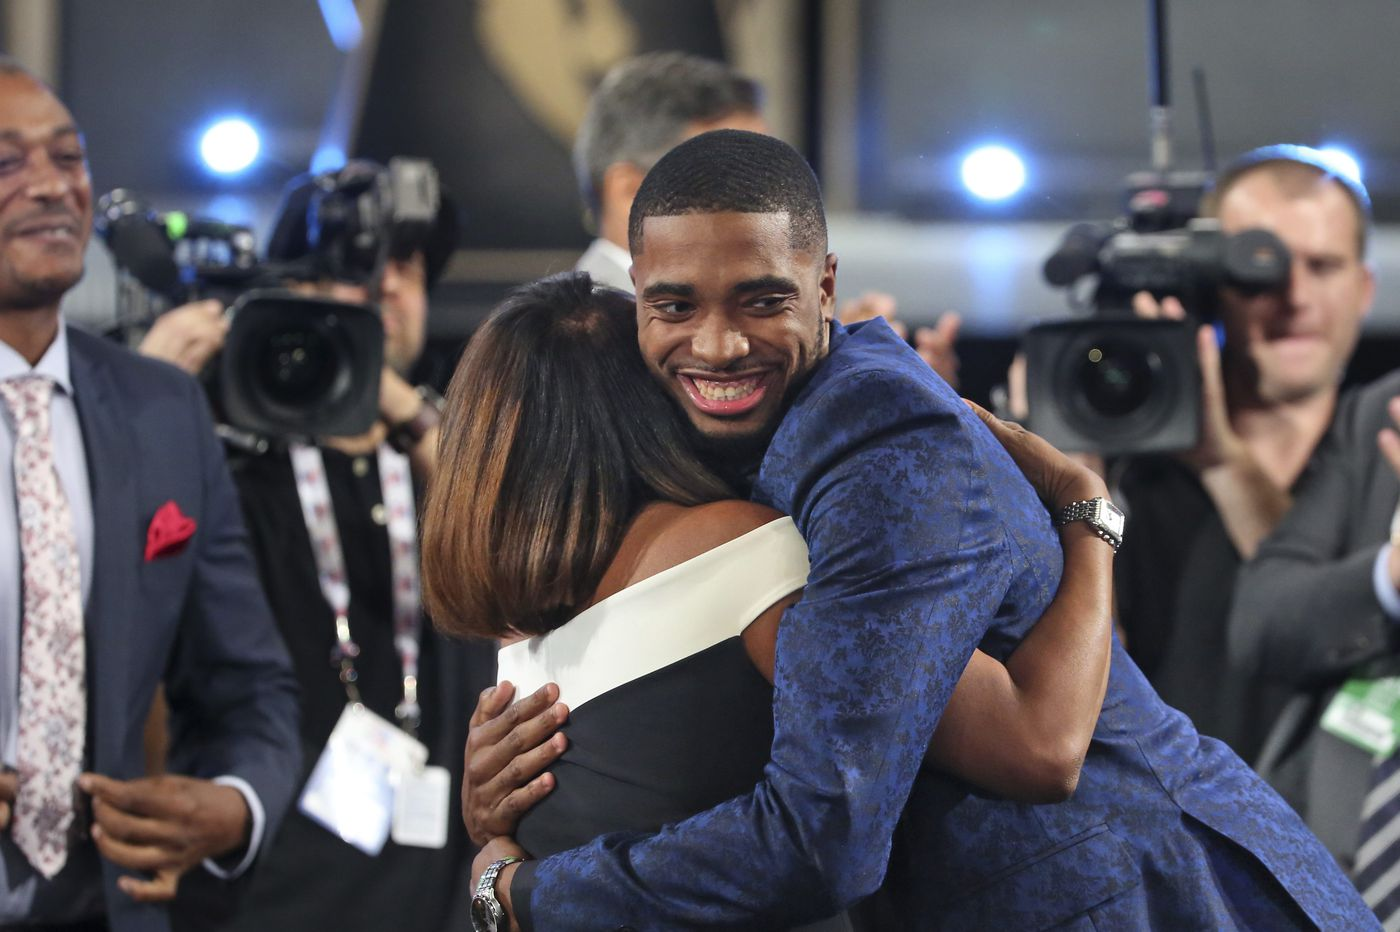 Sixers stole Mikal Bridges' family's dream